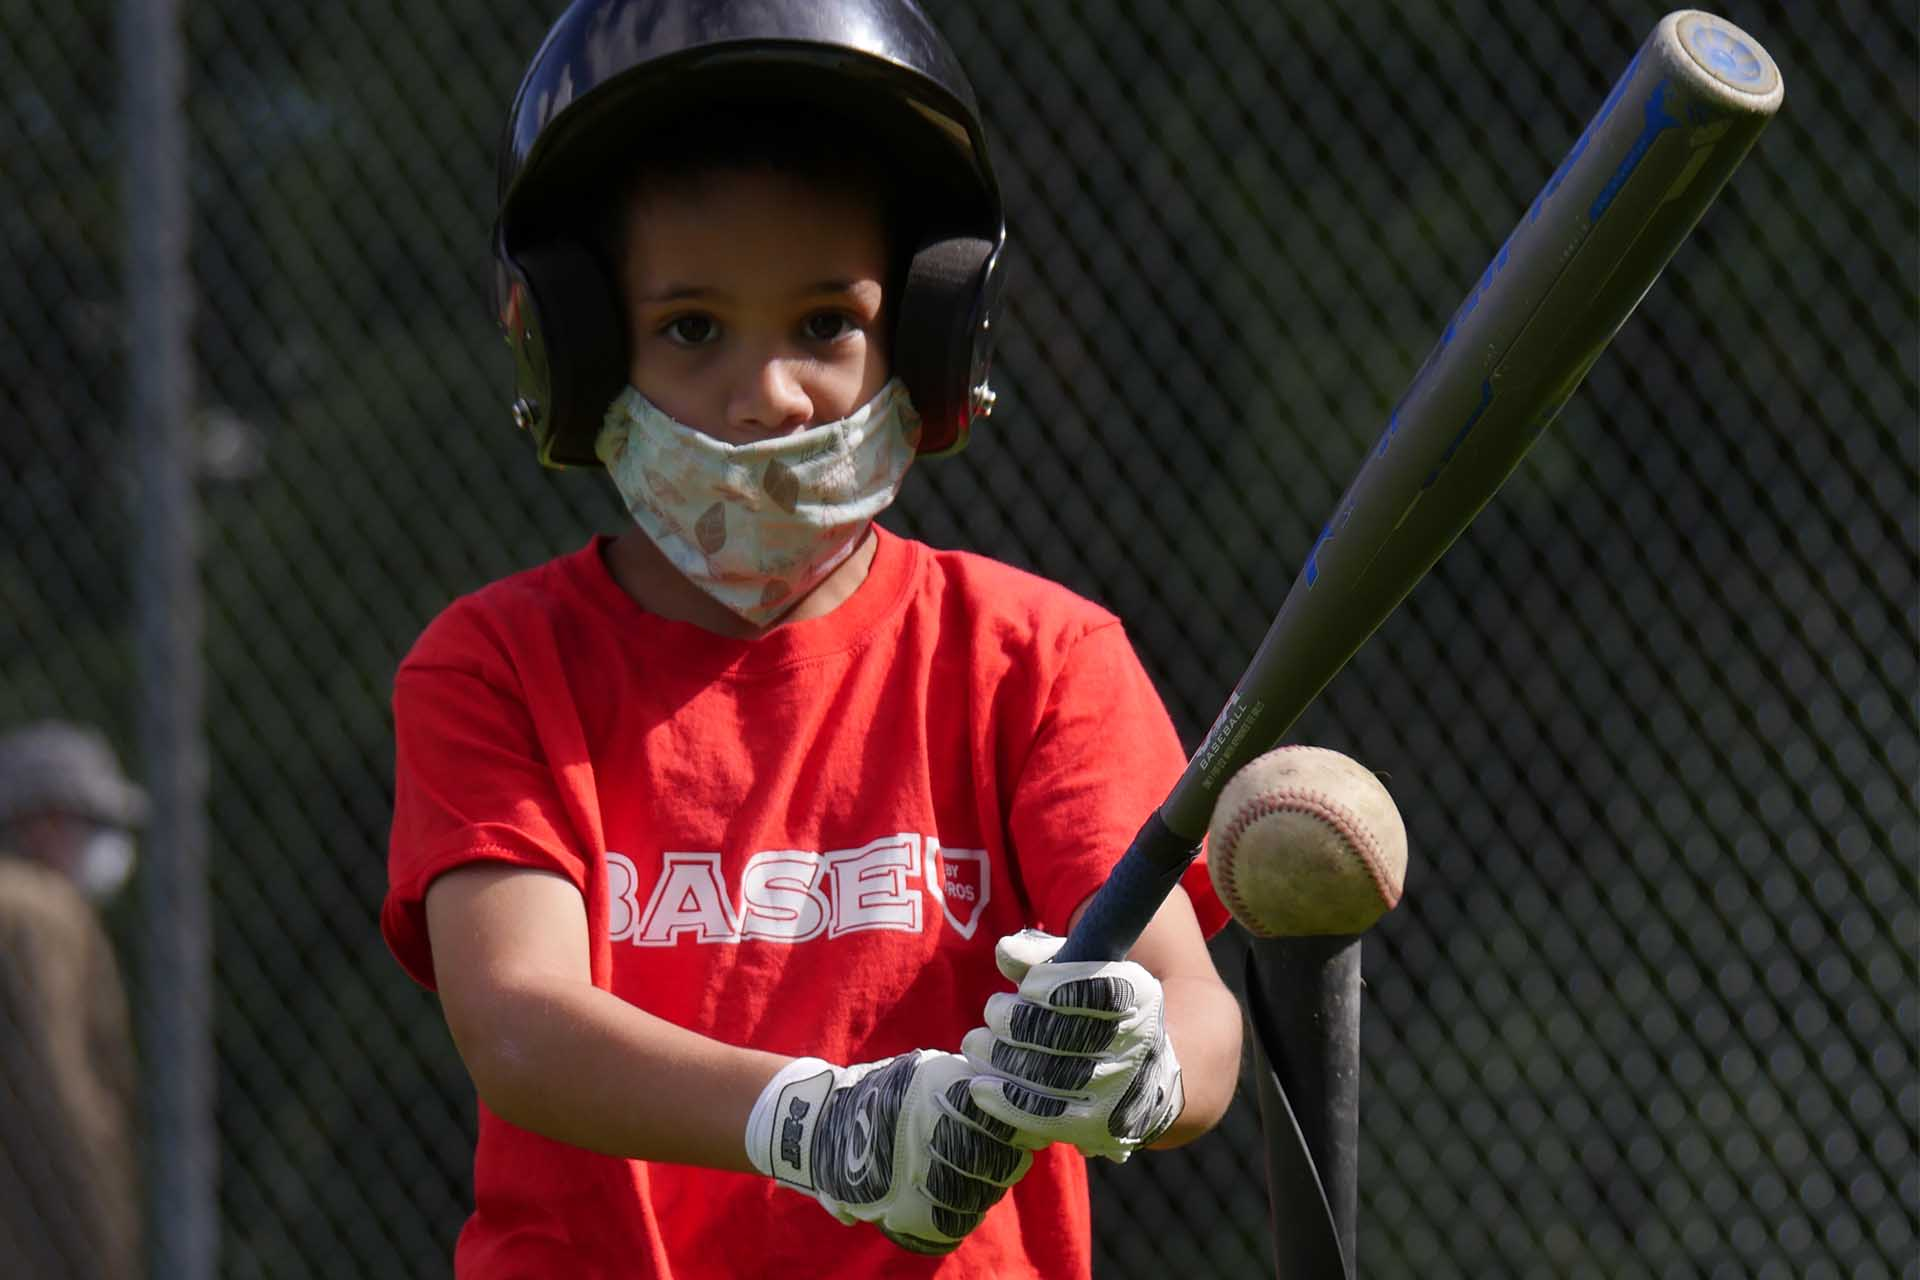 Boy Preparing to Hit at Batting Tee